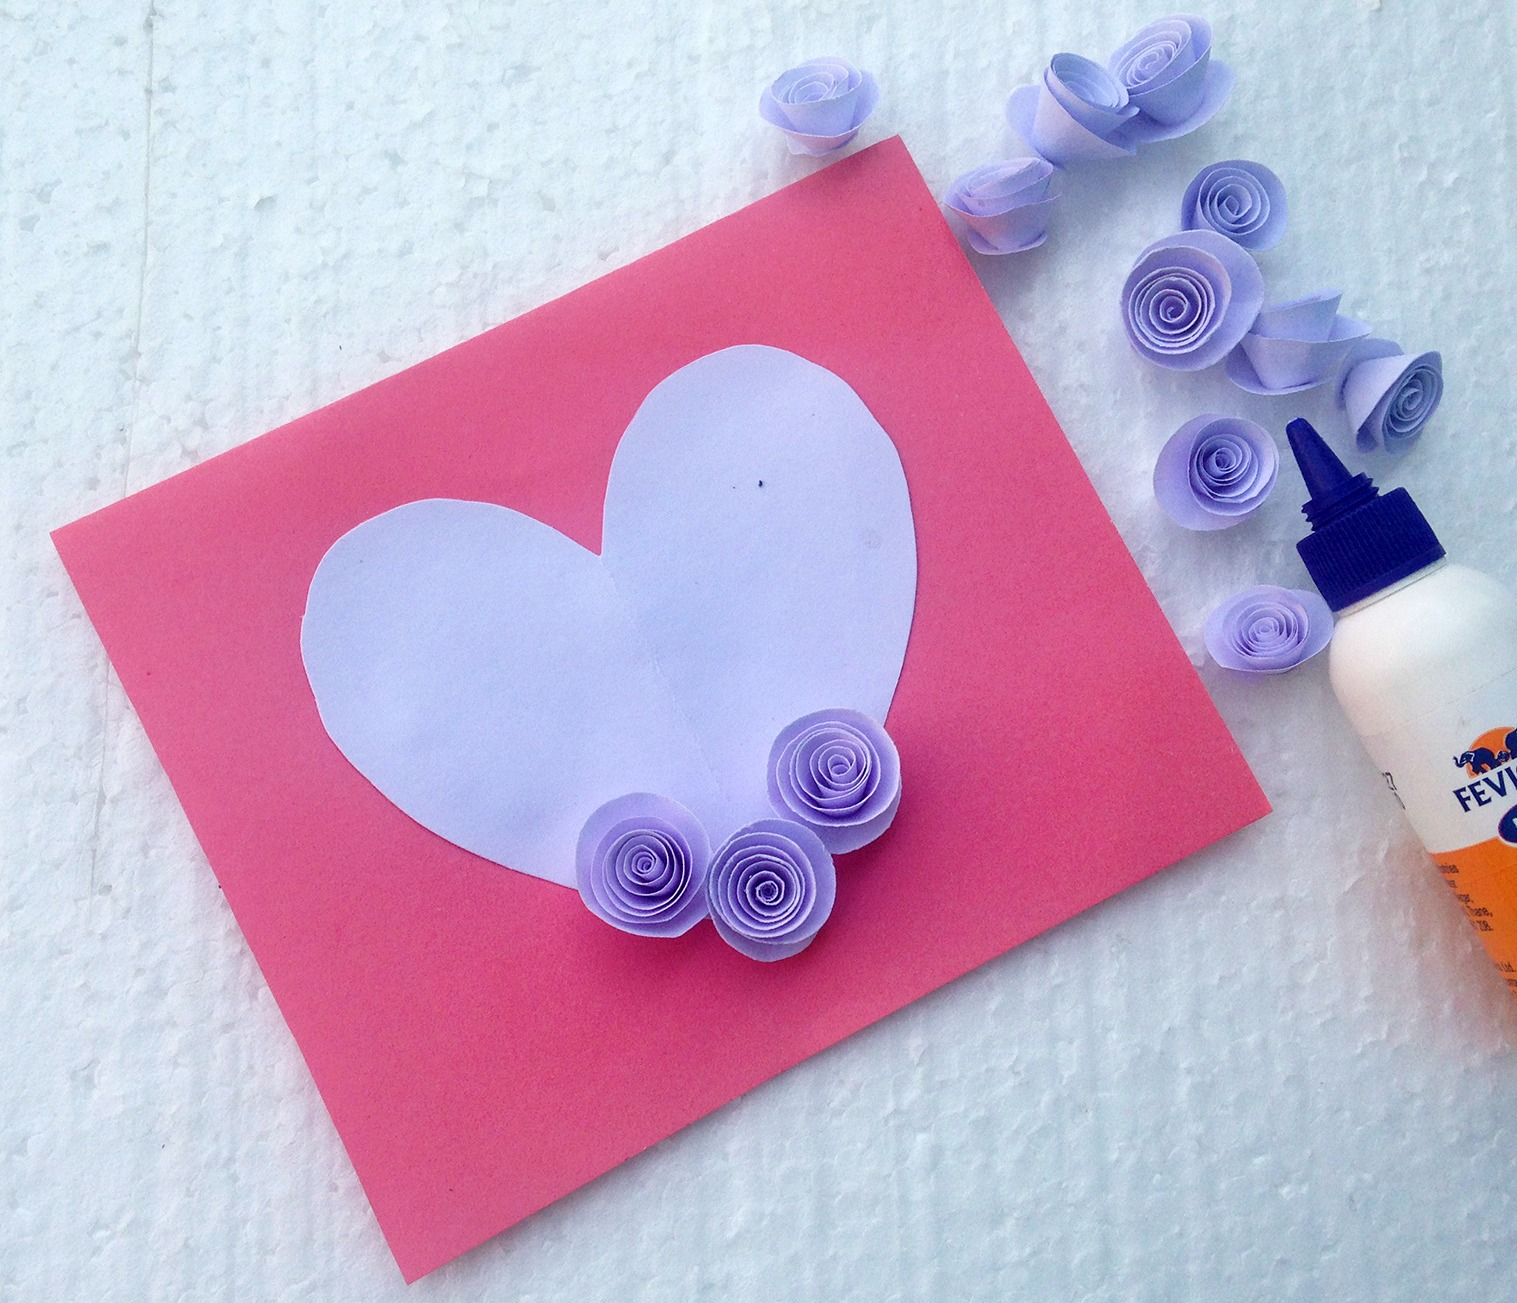 Valentines-day-card-diy-ideas-craft